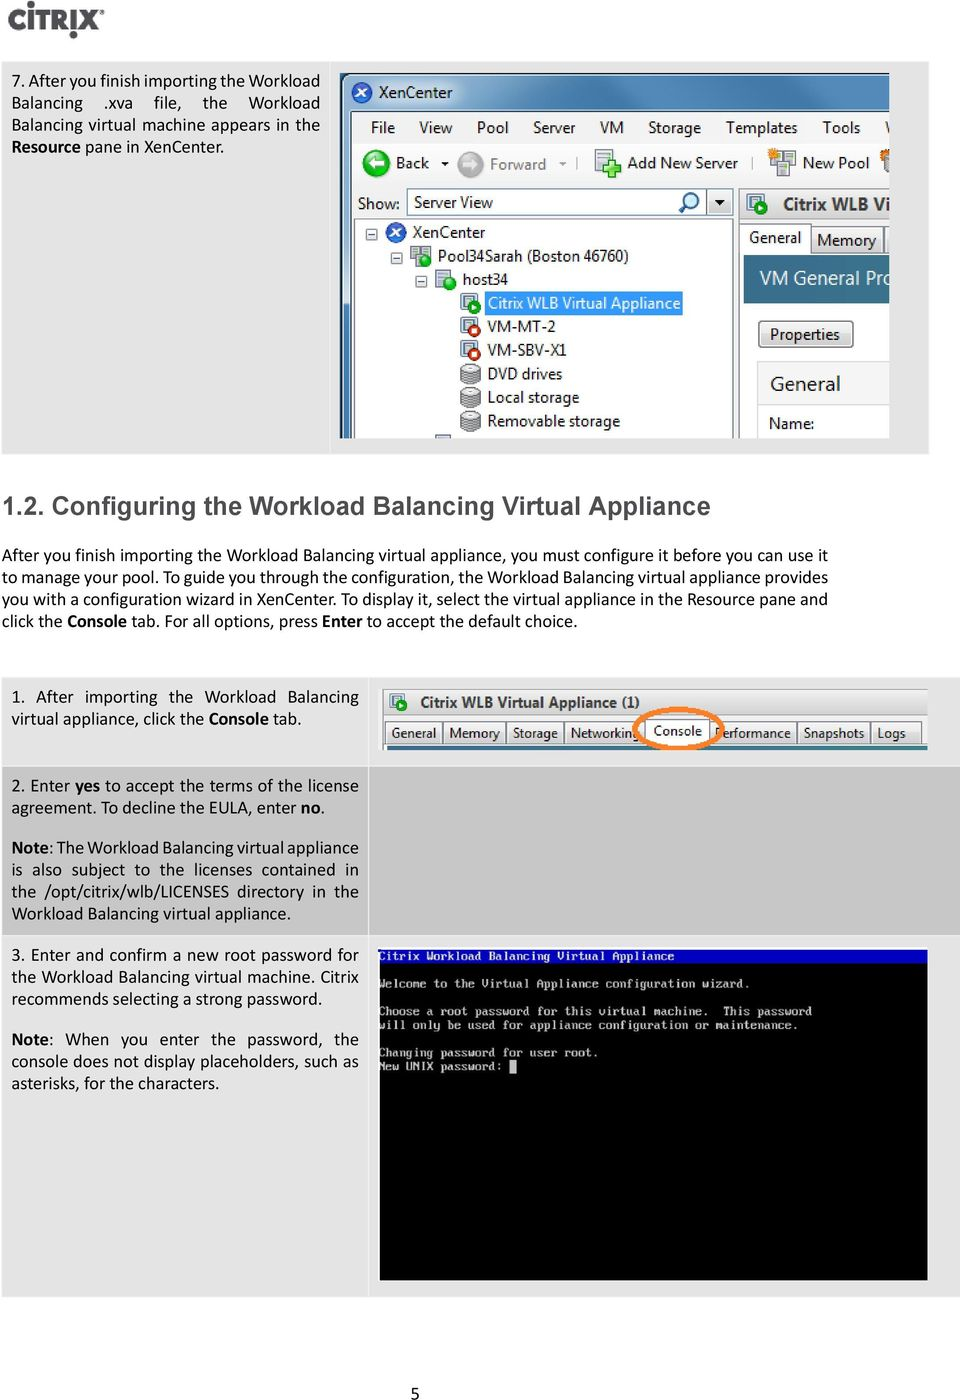 To guide you through the configuration, the Workload Balancing virtual appliance provides you with a configuration wizard in XenCenter.